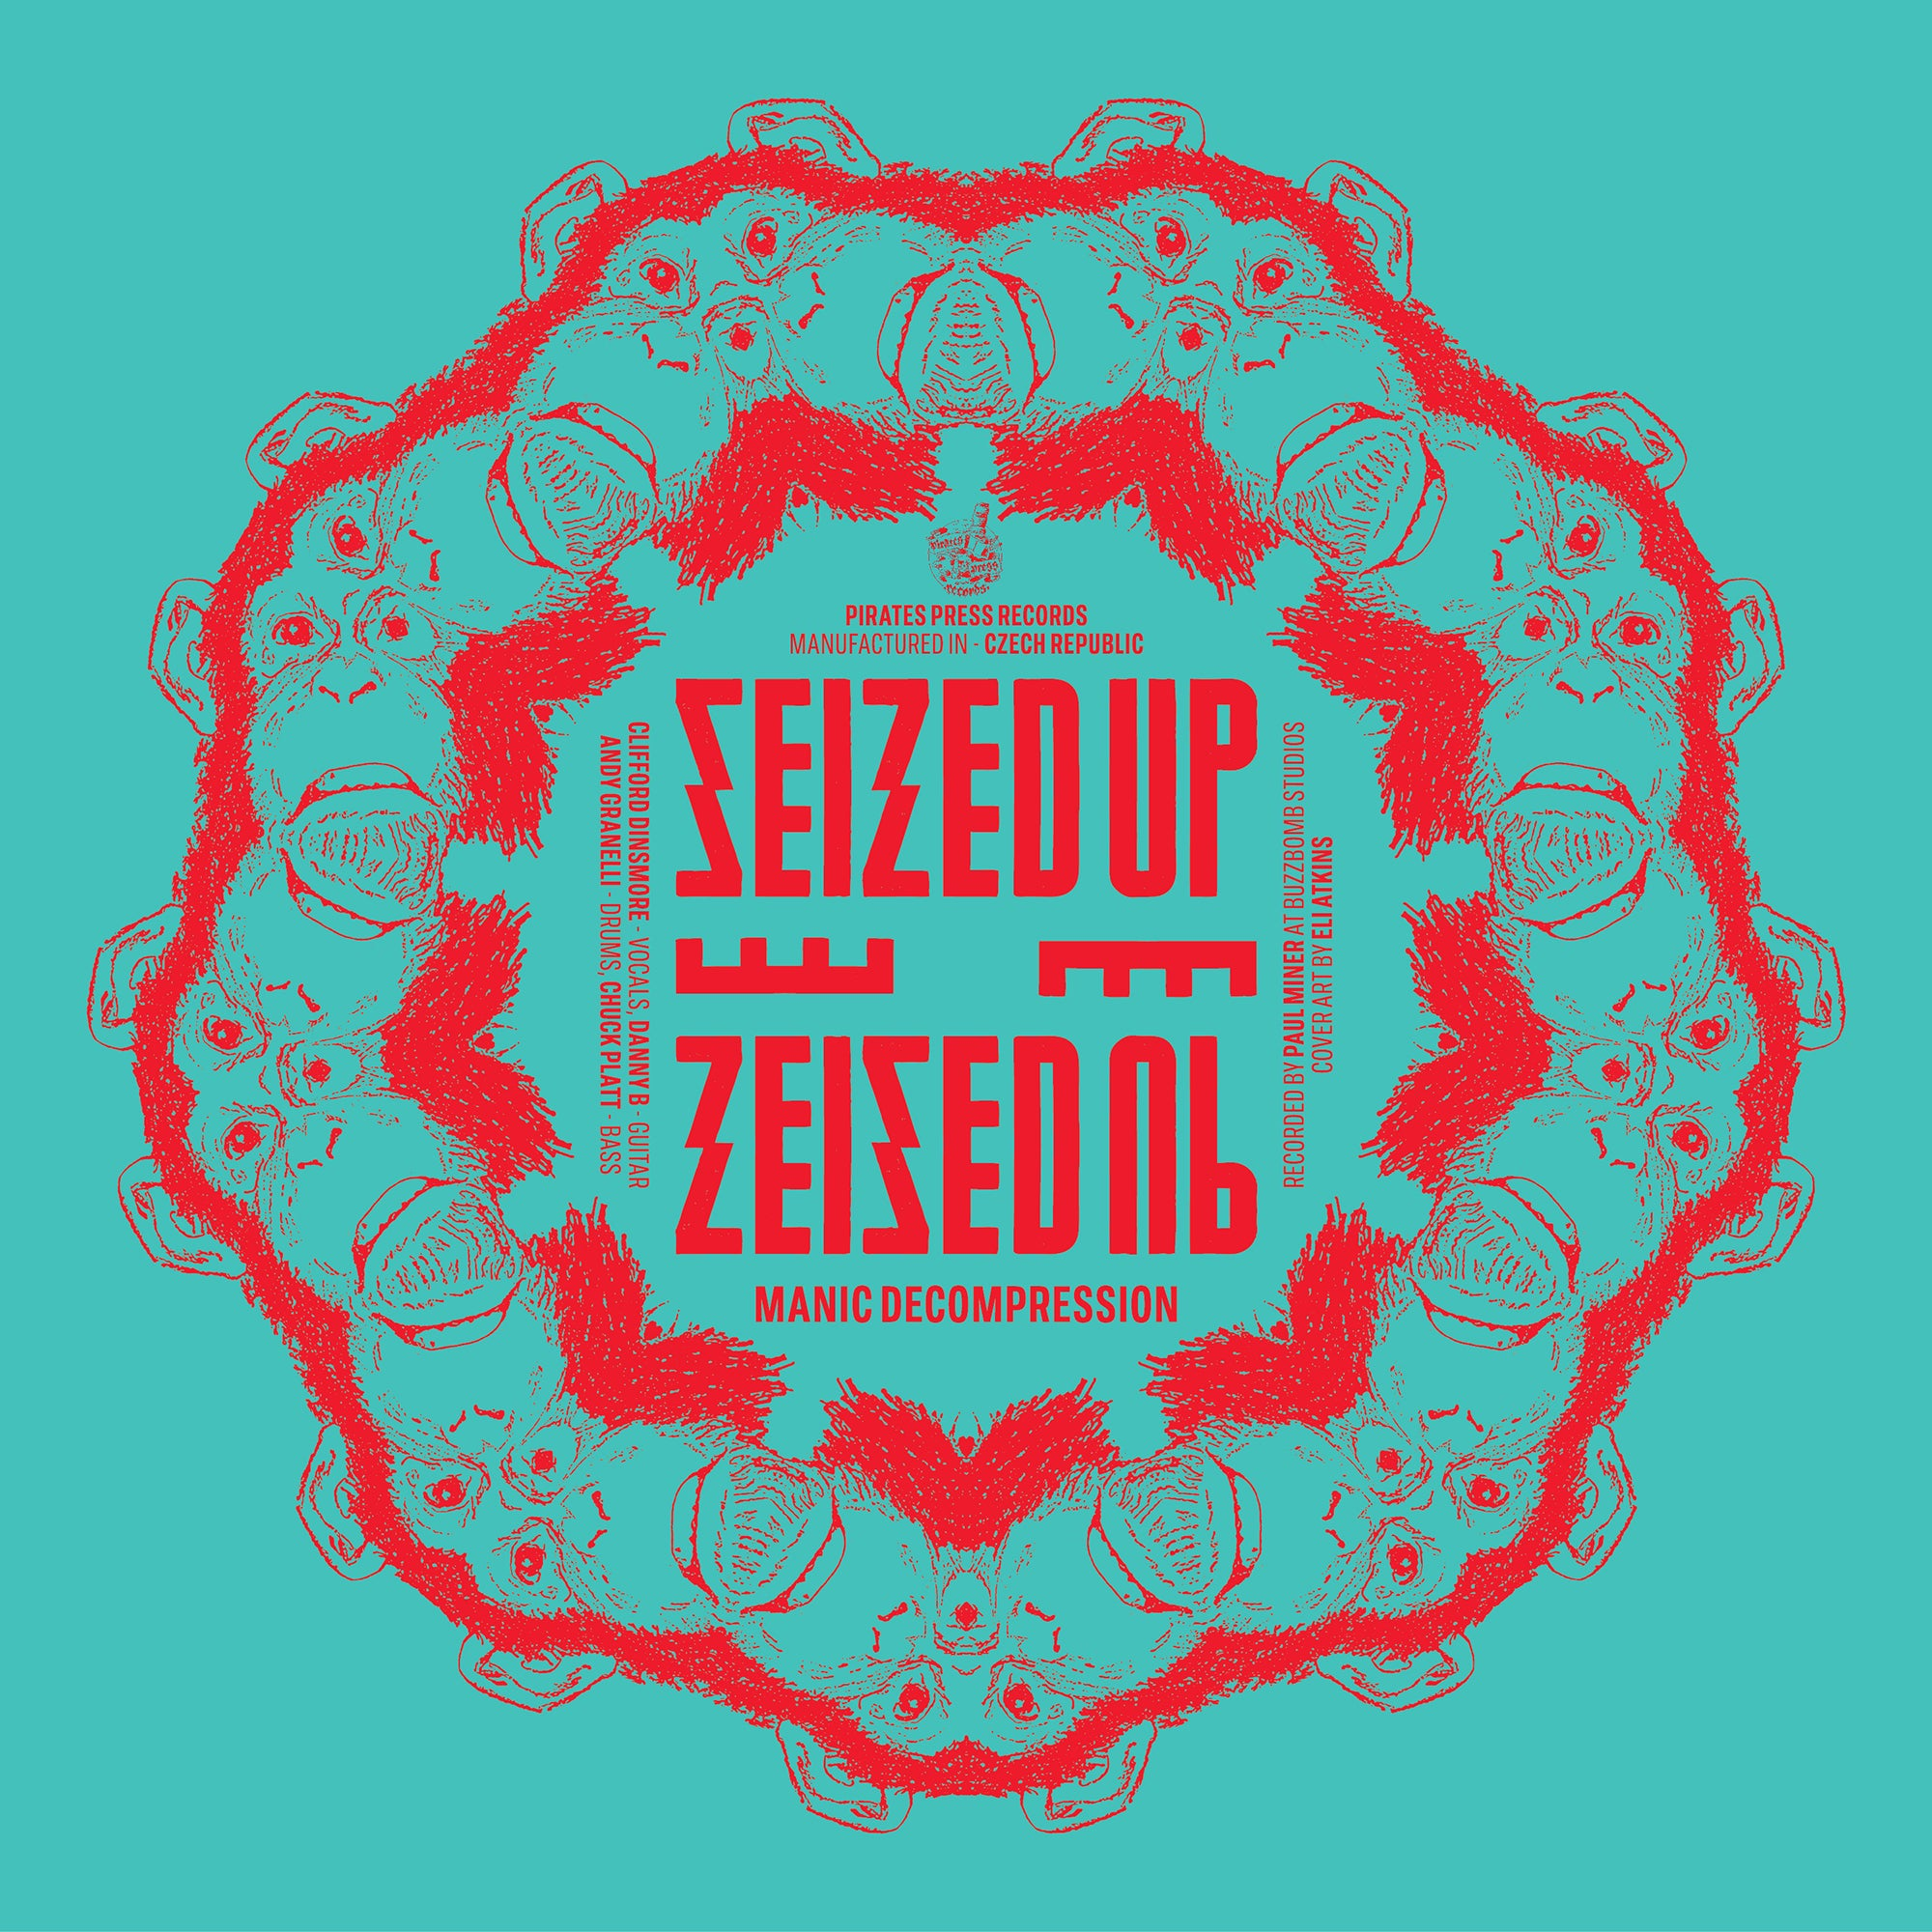 Seized Up - Manic Decompression Flexi